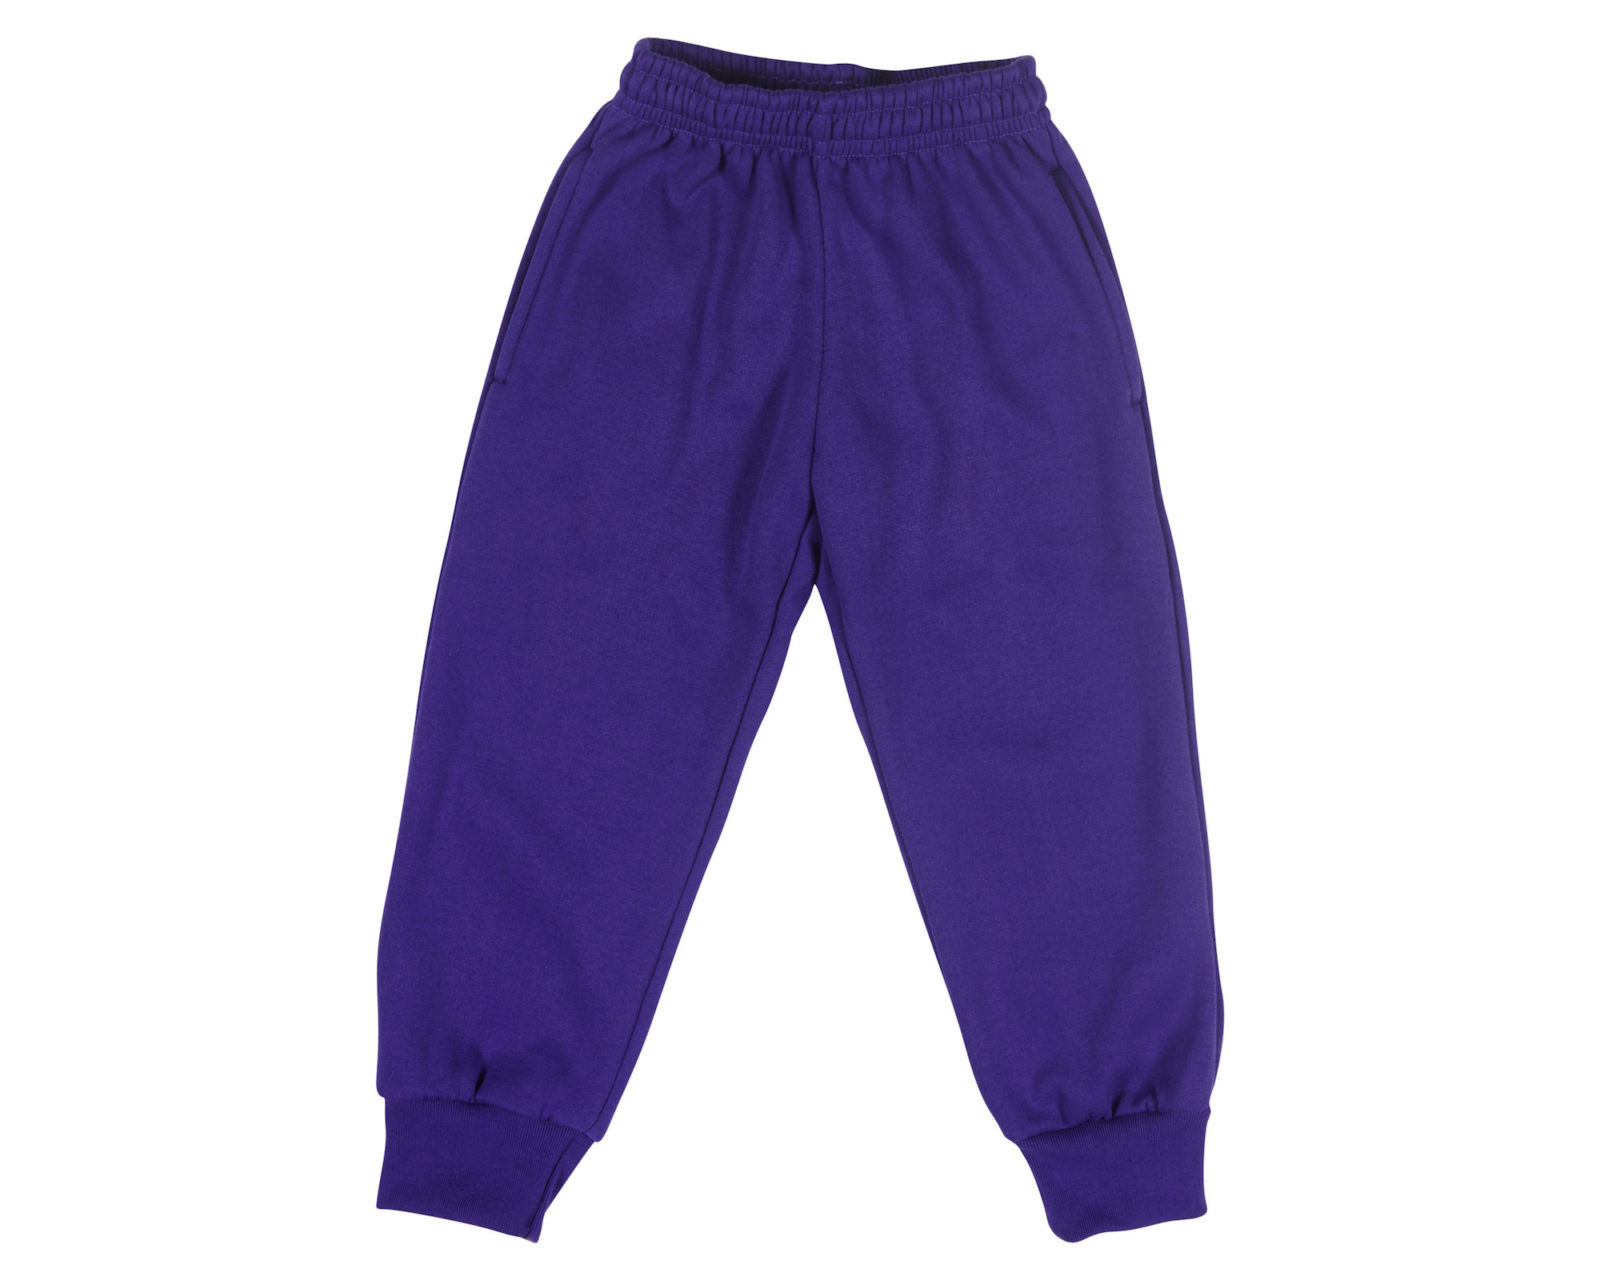 Qualitops Kids Track Pants Polycotton Australian made clothing